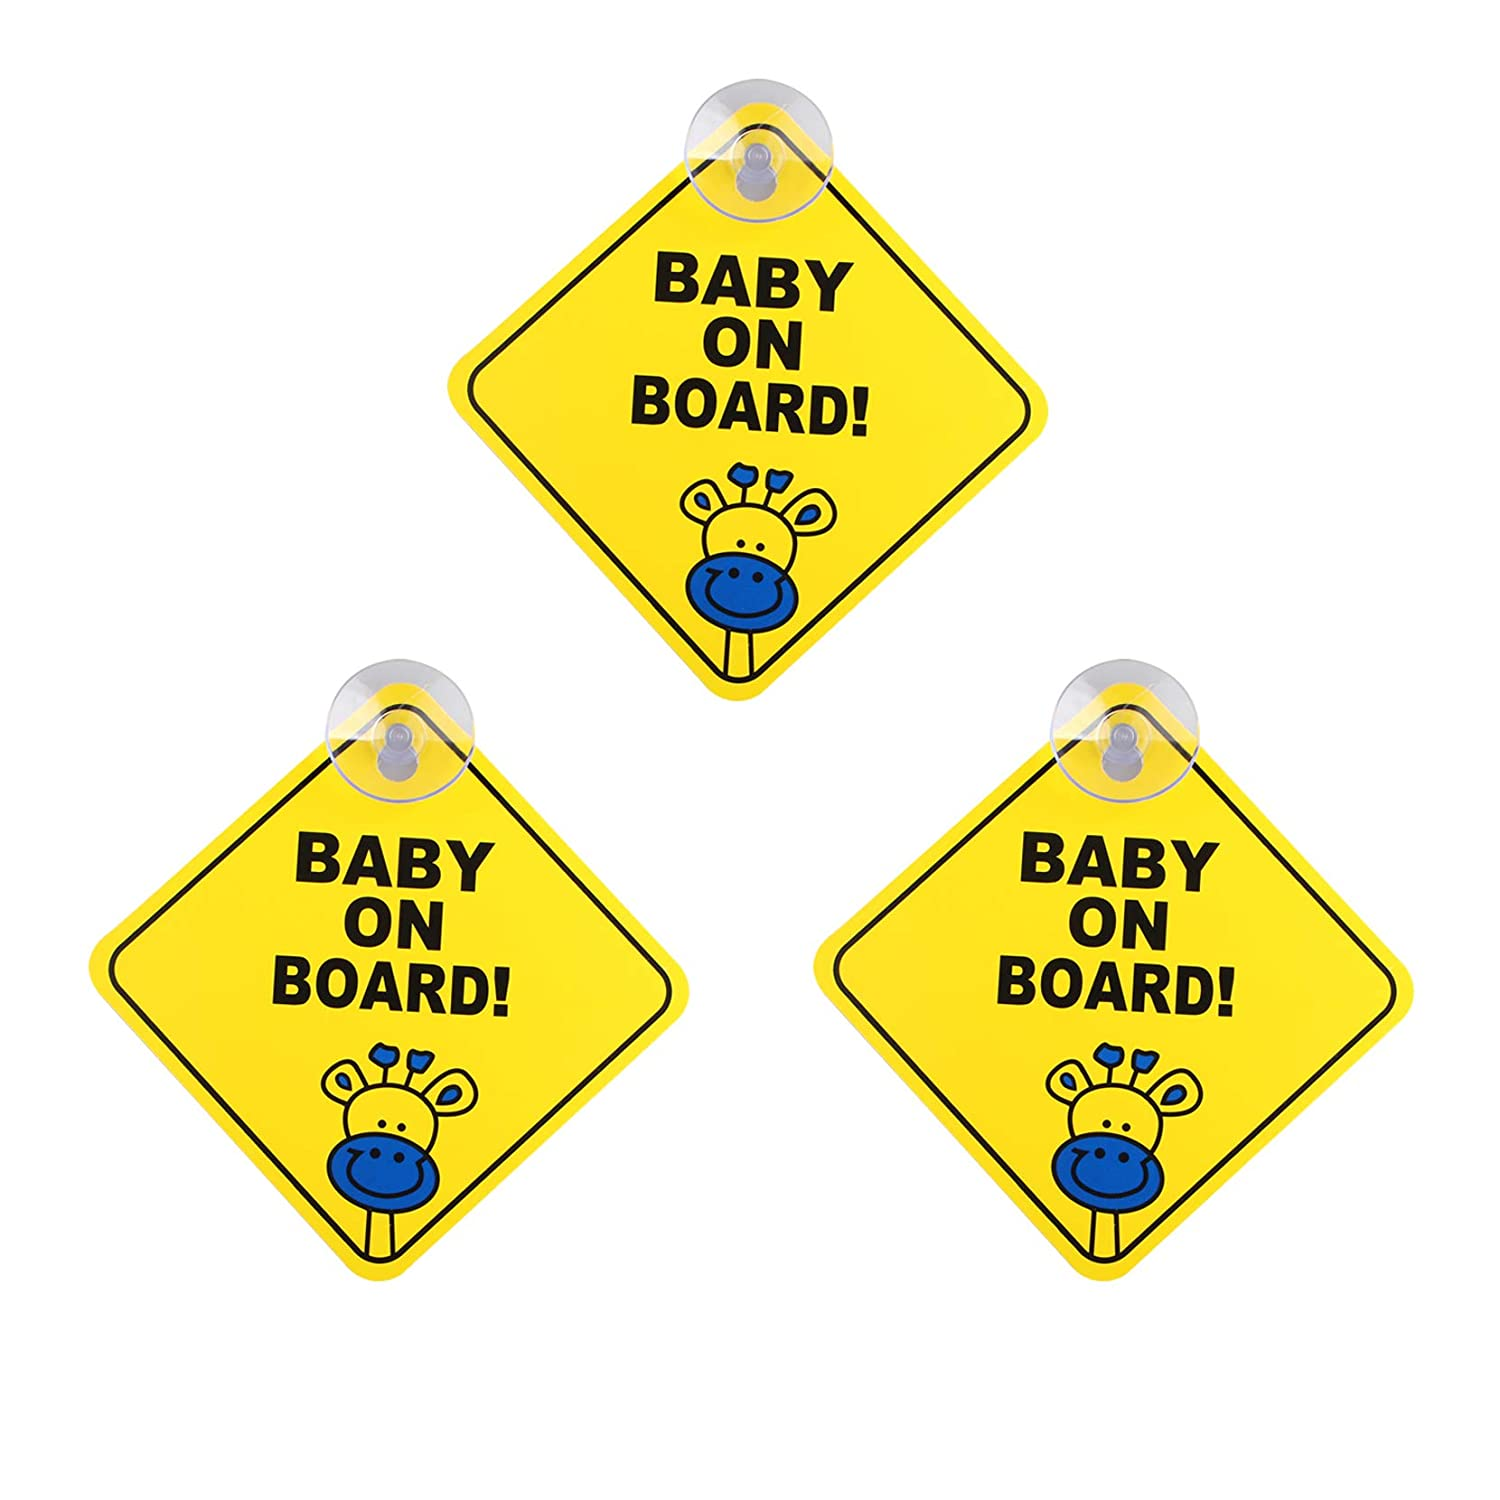 3Pcs Baby On Board Sign for Car Warning Safety Suction Cup Sucker Sticker Waterproof Notice Board for Drive, Removable